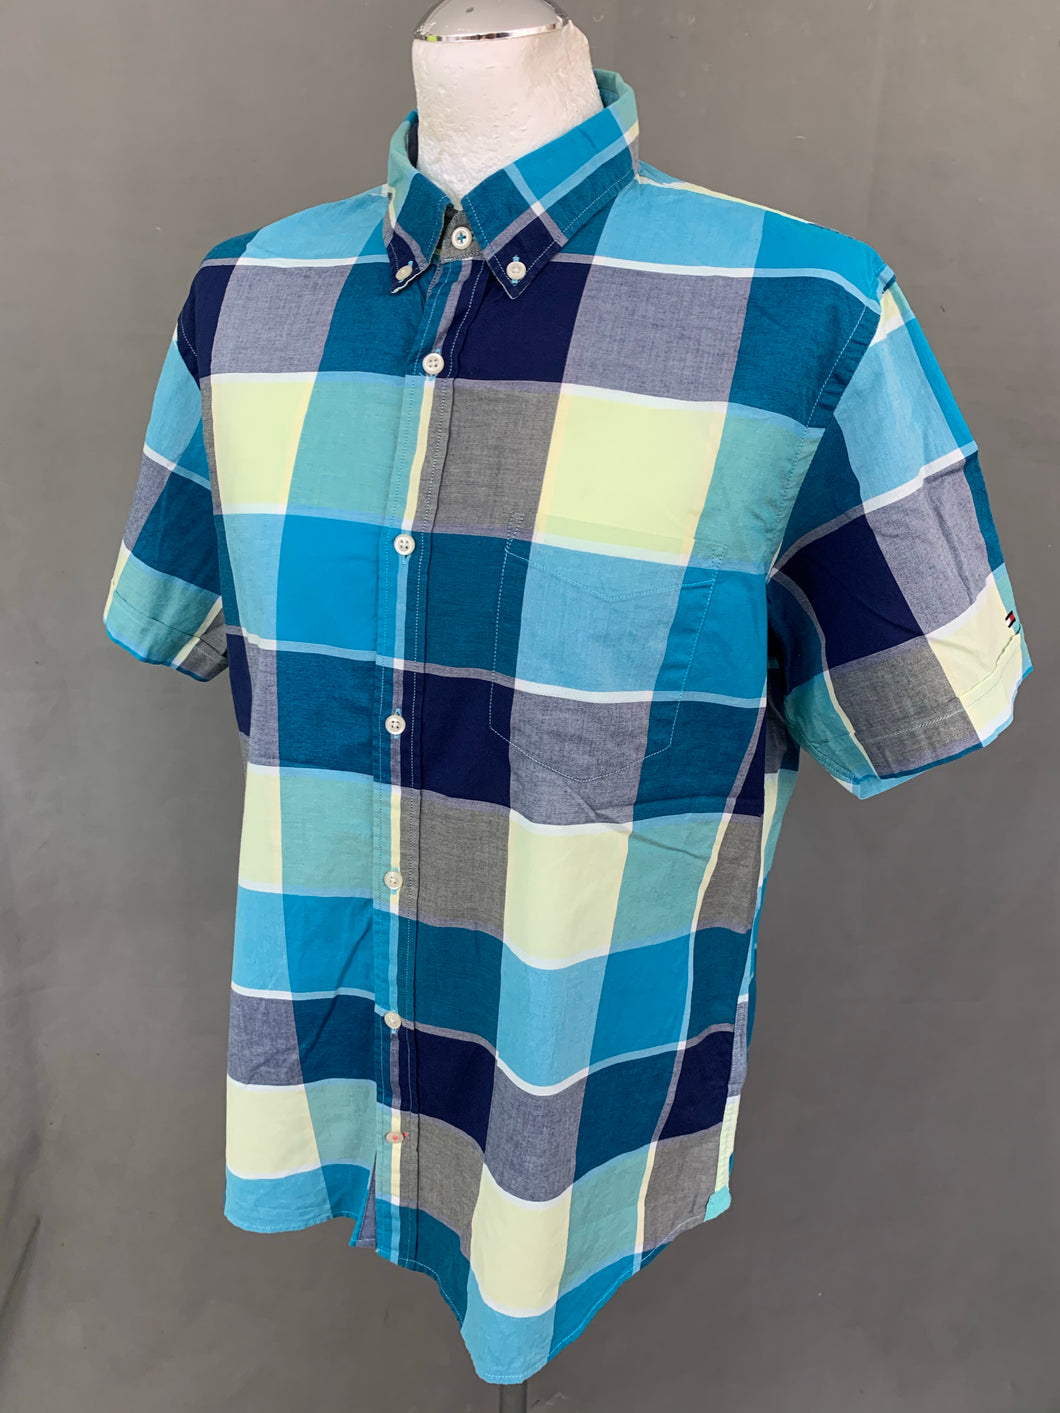 TOMMY HILFIGER Mens Check Pattern SHIRT - Size XL Extra Large